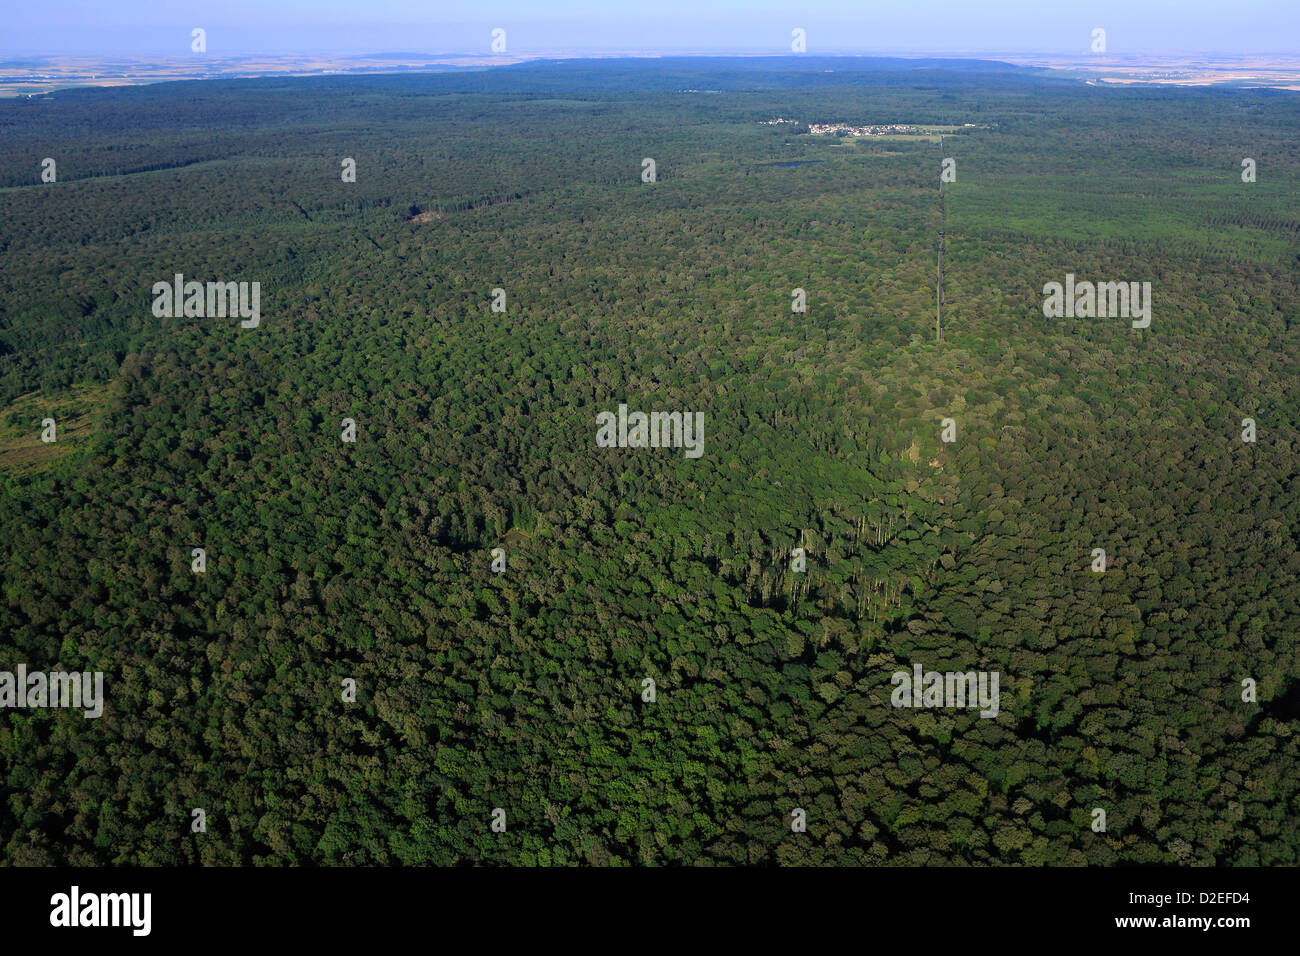 France, Marne (51), the Regional Natural Park of the Montagne de Reims, wooded plateau, - Stock Image